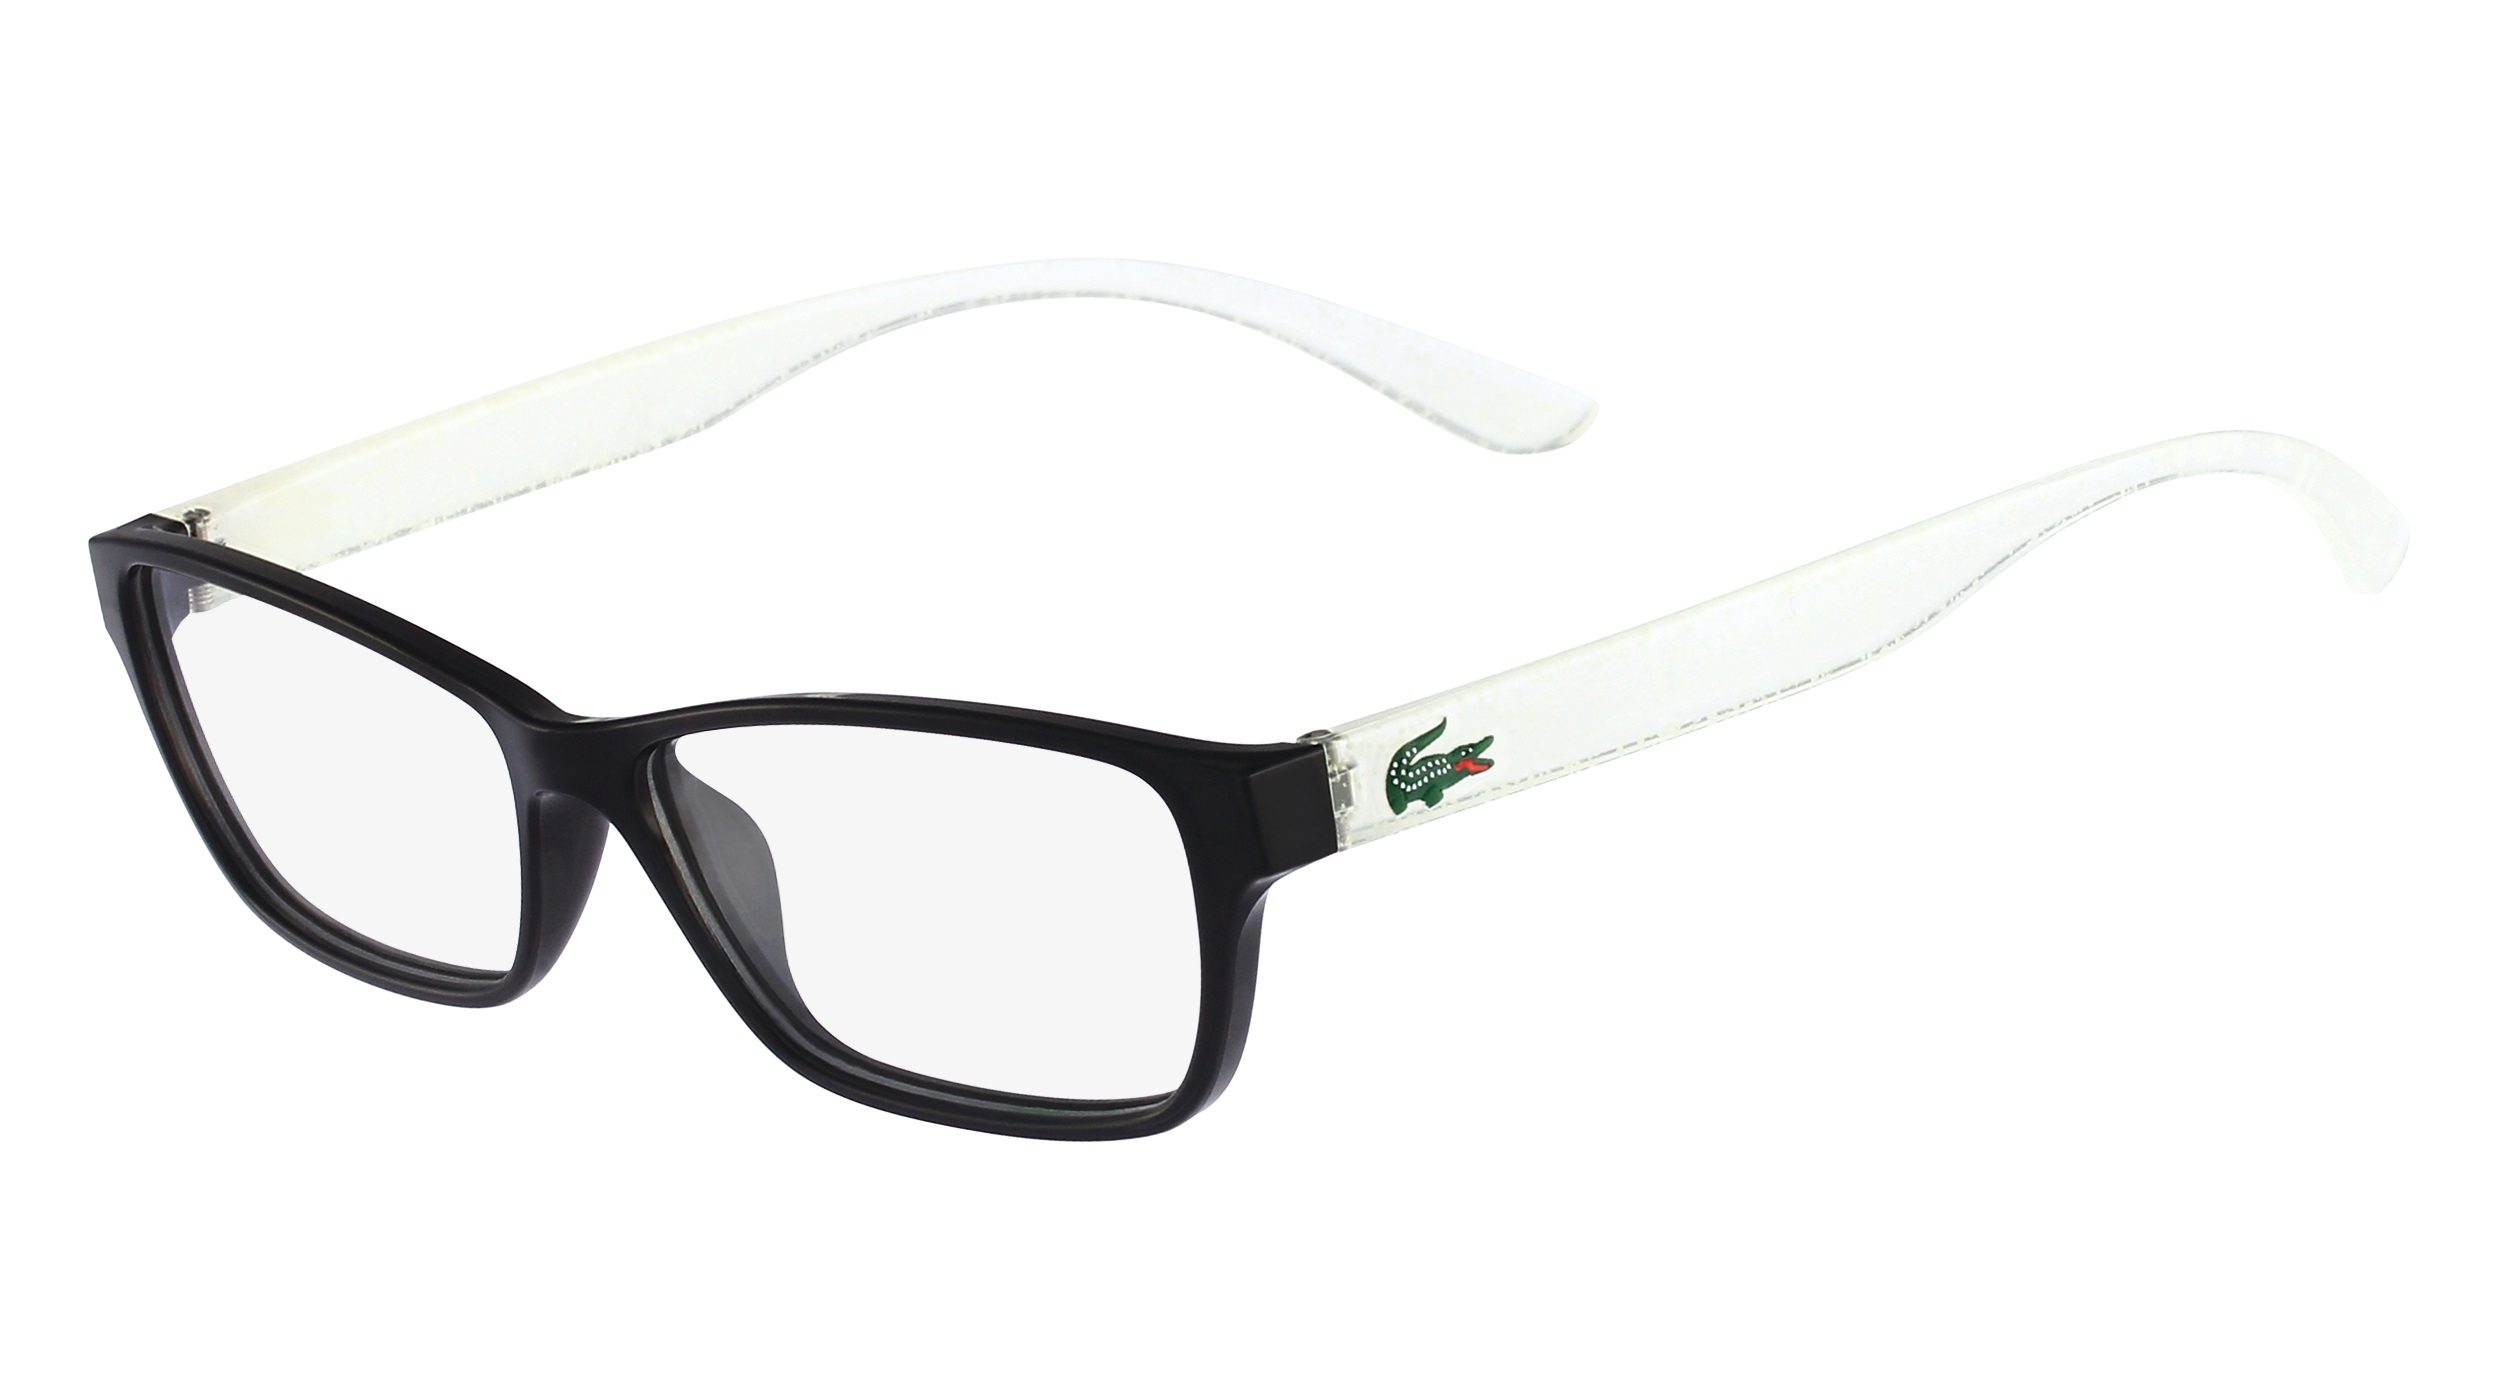 868d22838ae Kids Glasses - 11-13 years Lacoste - Optiwow